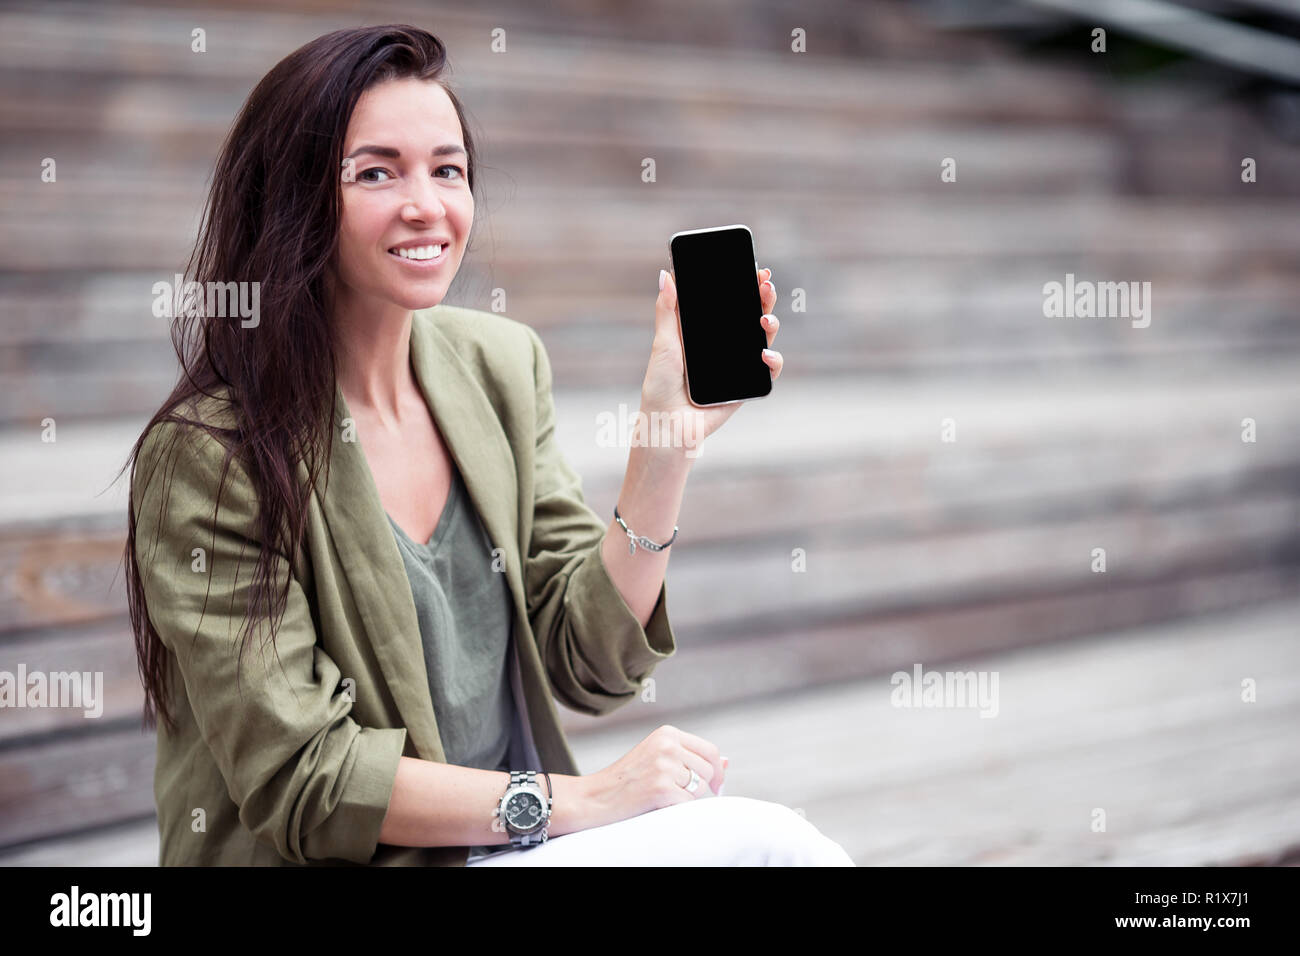 Happy woman with smartphone outdoors in the city - Stock Image